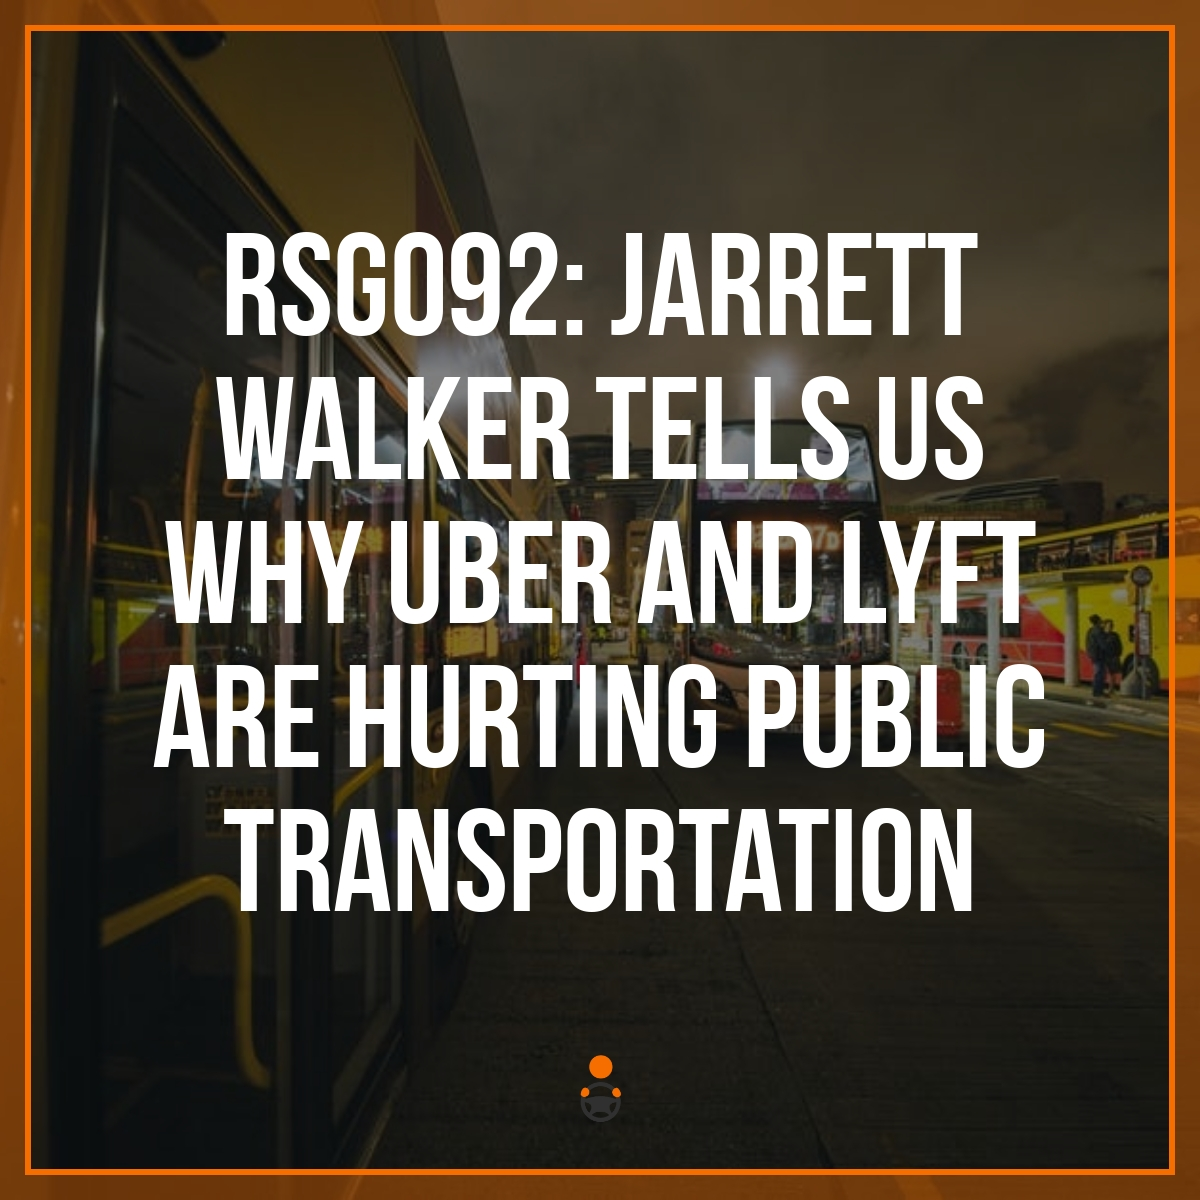 RSG092: Jarrett Walker Tells Us Why Uber and Lyft are Hurting Public Transportation